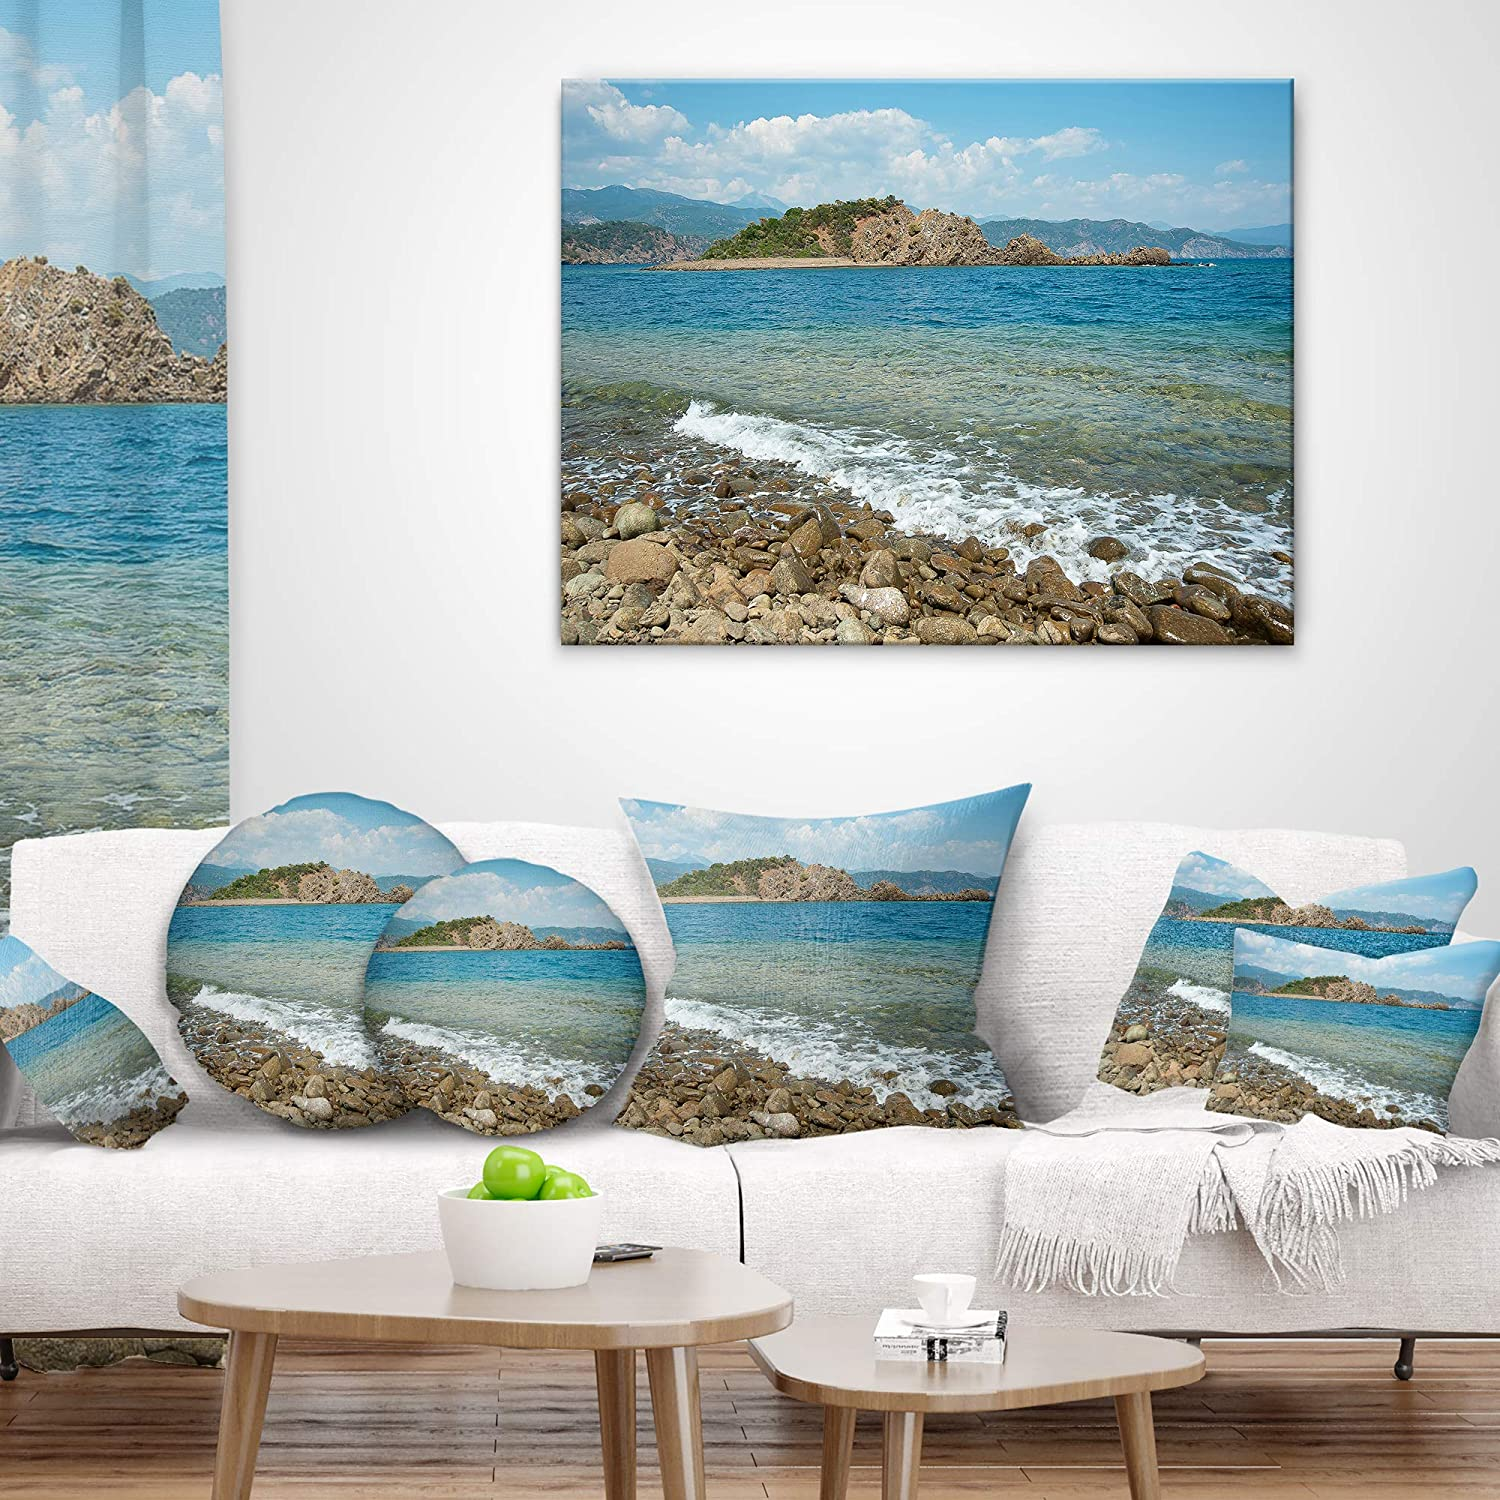 Insert Printed On Both Side Designart CU11106-26-26 Small Isle Turkey Panorama Seashore Cushion Cover for Living Room in x 26 in Sofa Throw Pillow 26 in